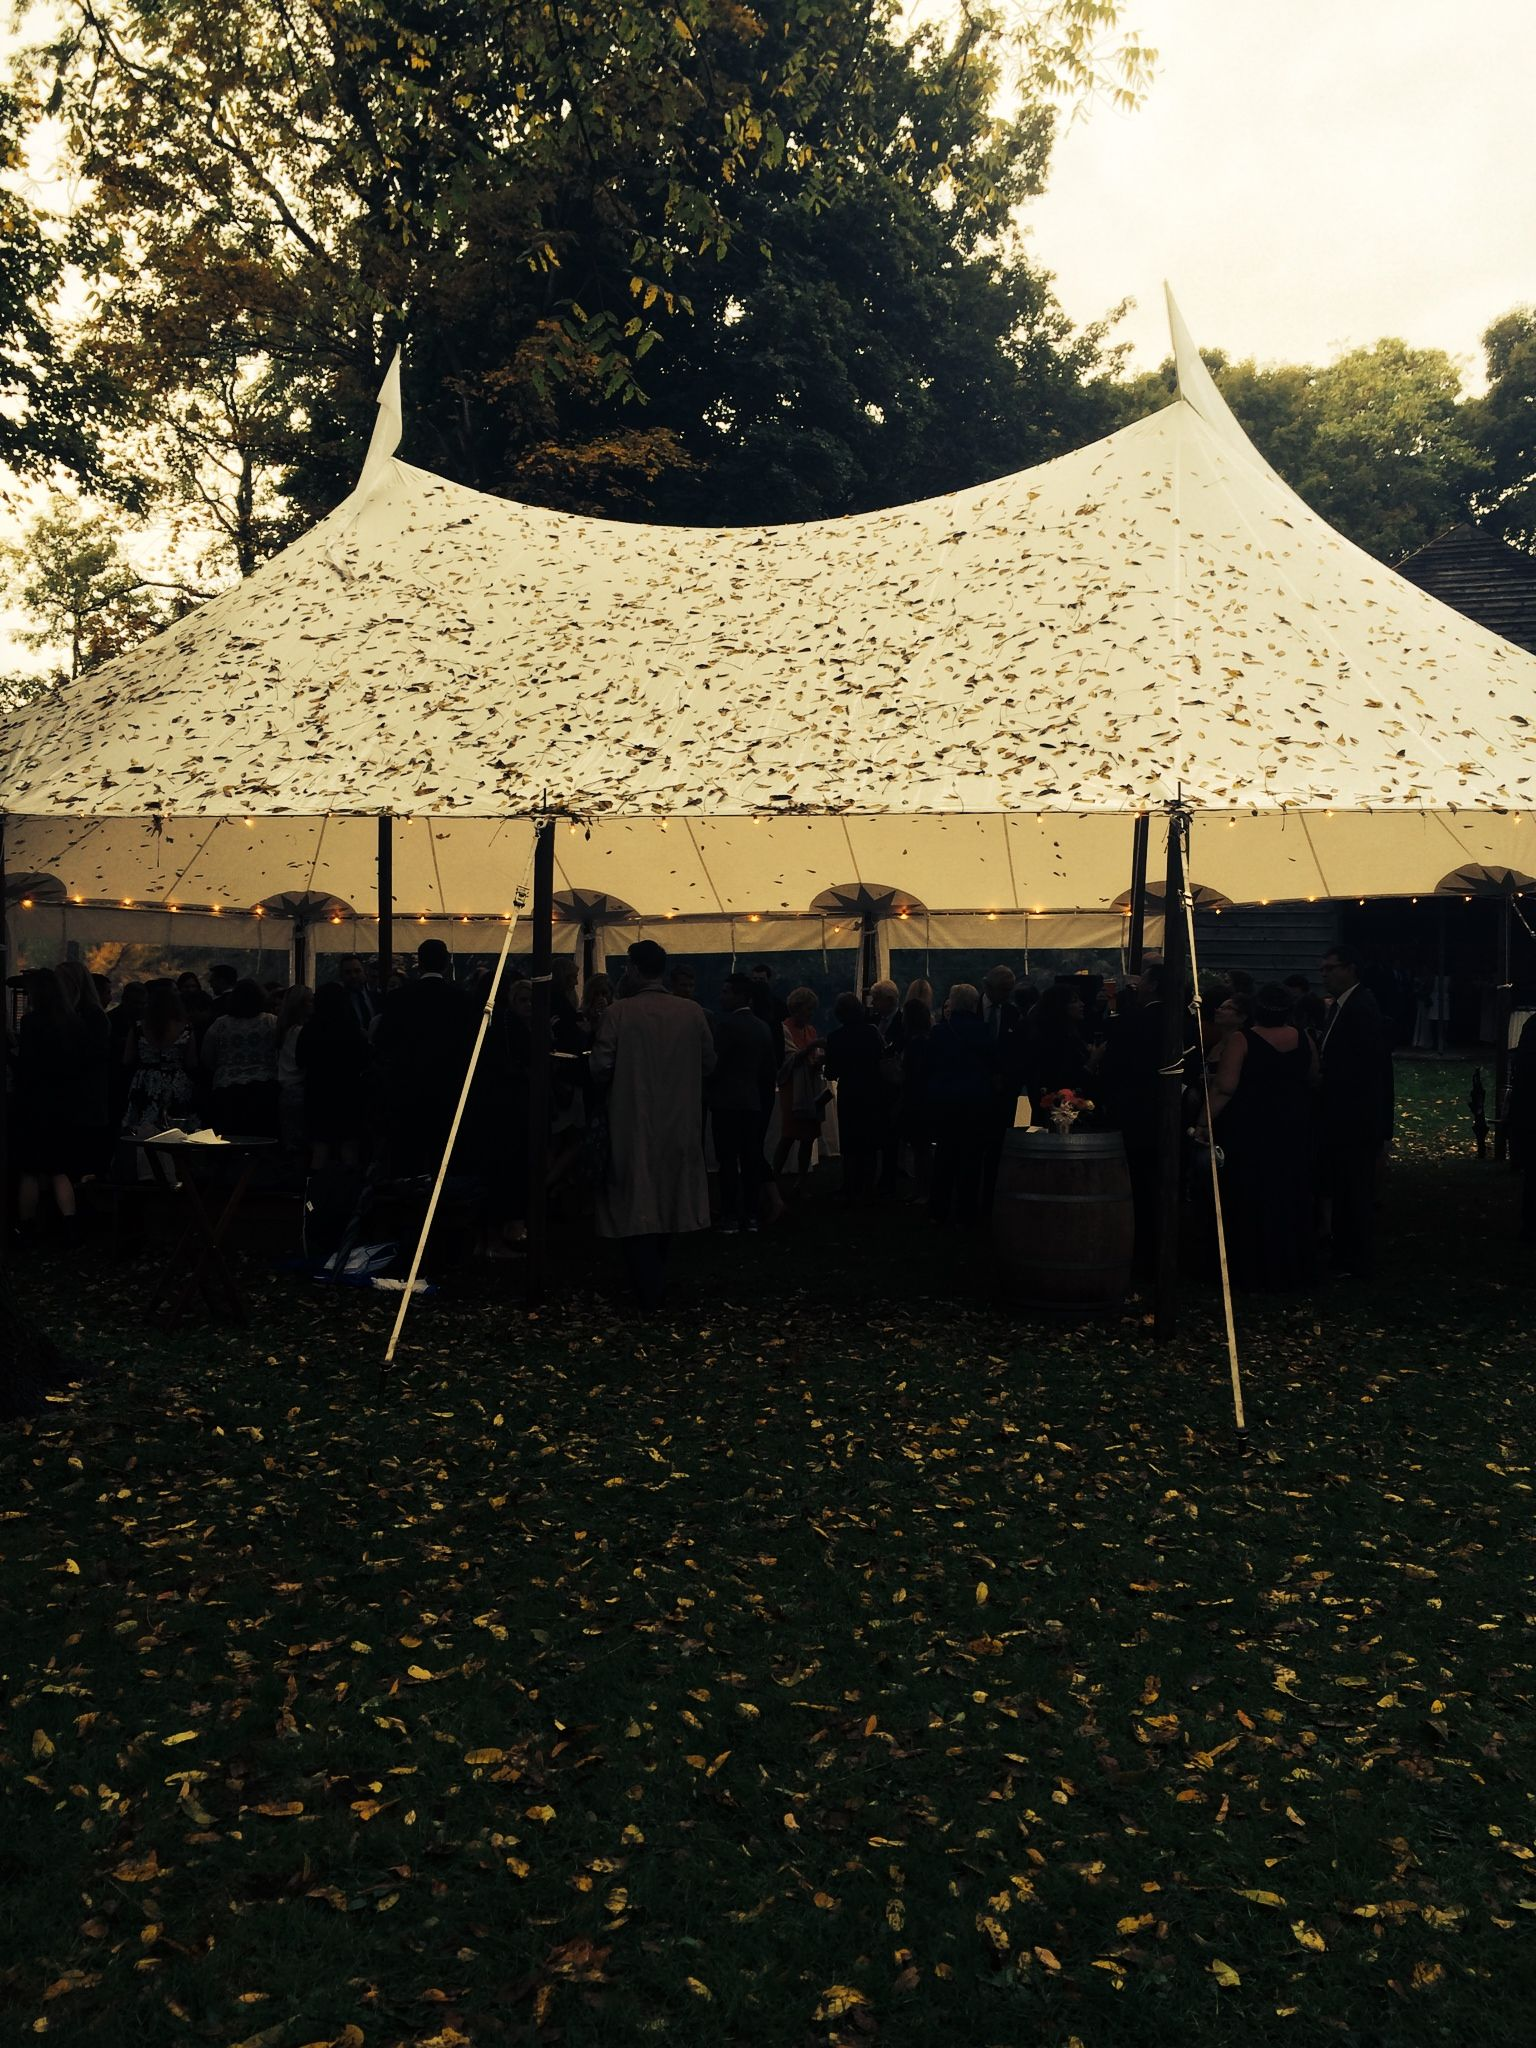 An outdoor fall wedding deserves a Tidewater Sailcloth tent! The leaves make a rainy day cocktail tent fit right in!